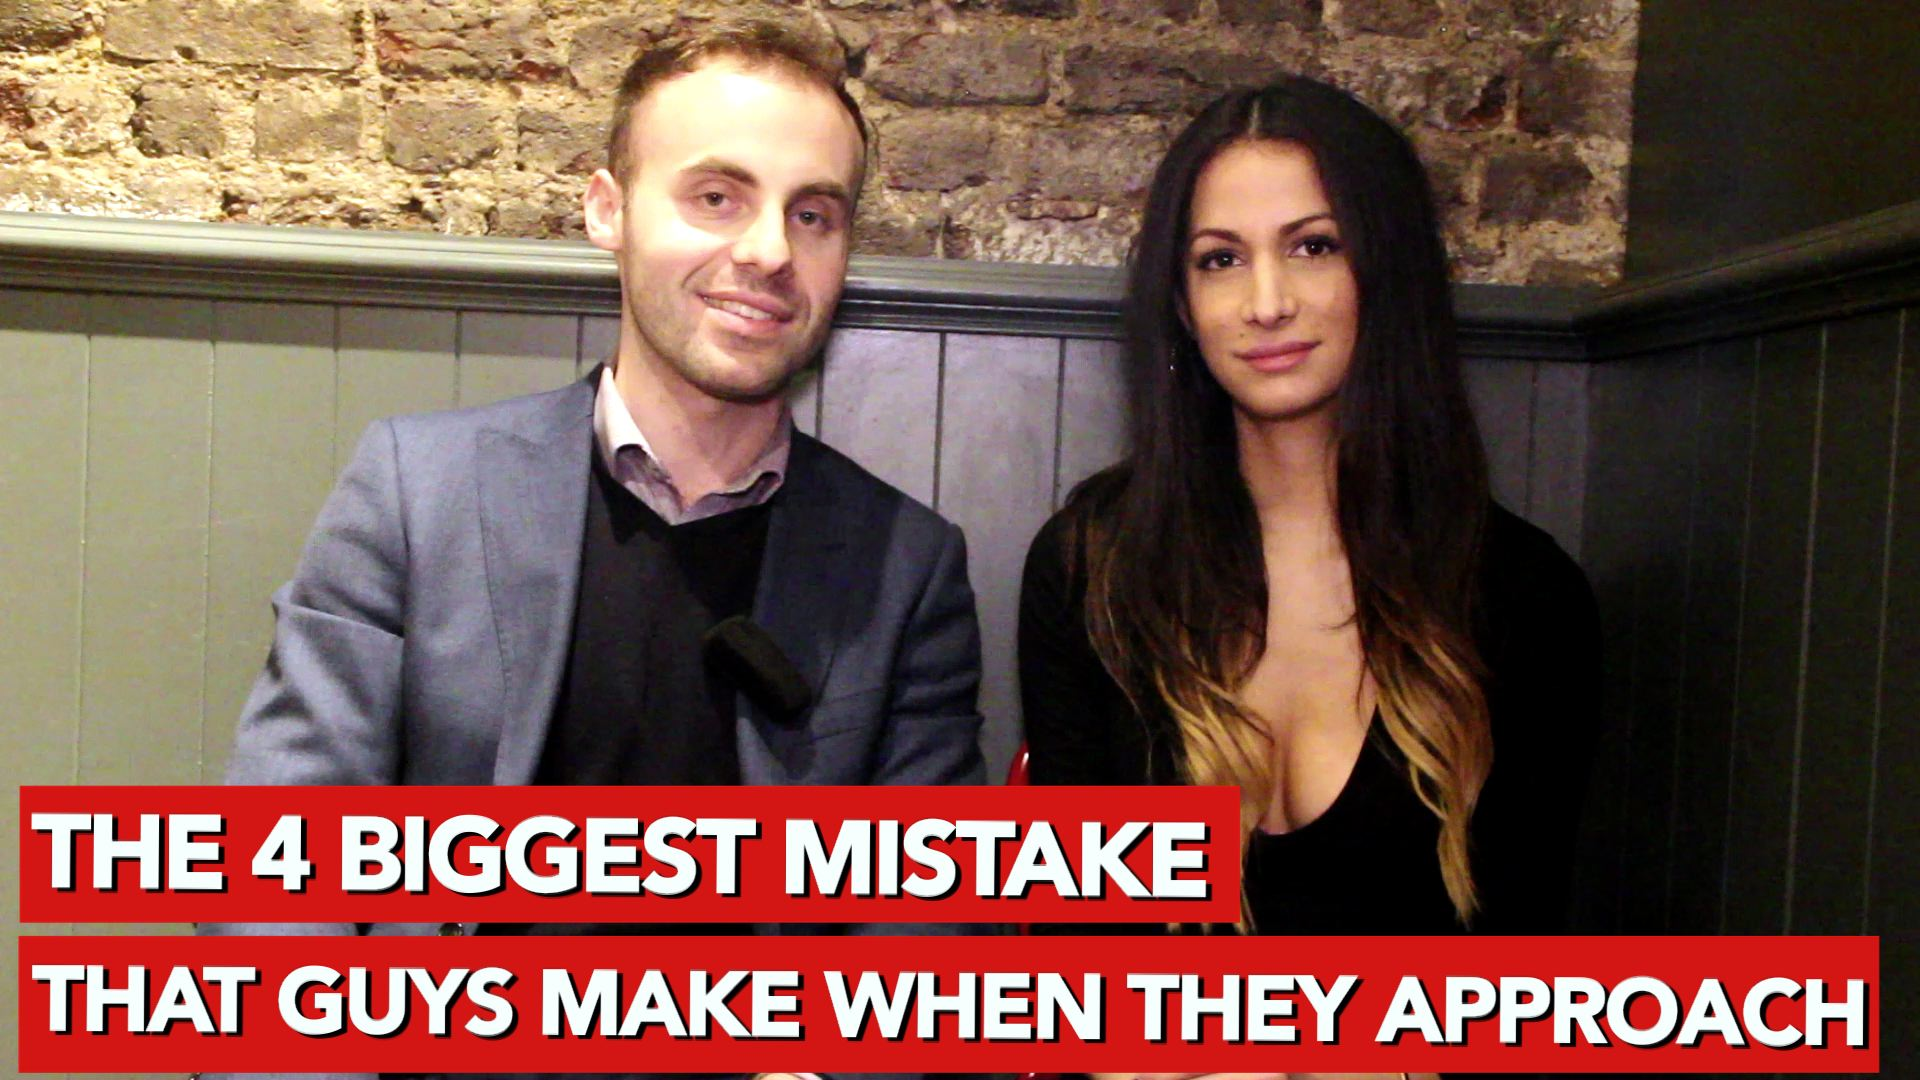 The 4 biggest mistake that guys make when they approach